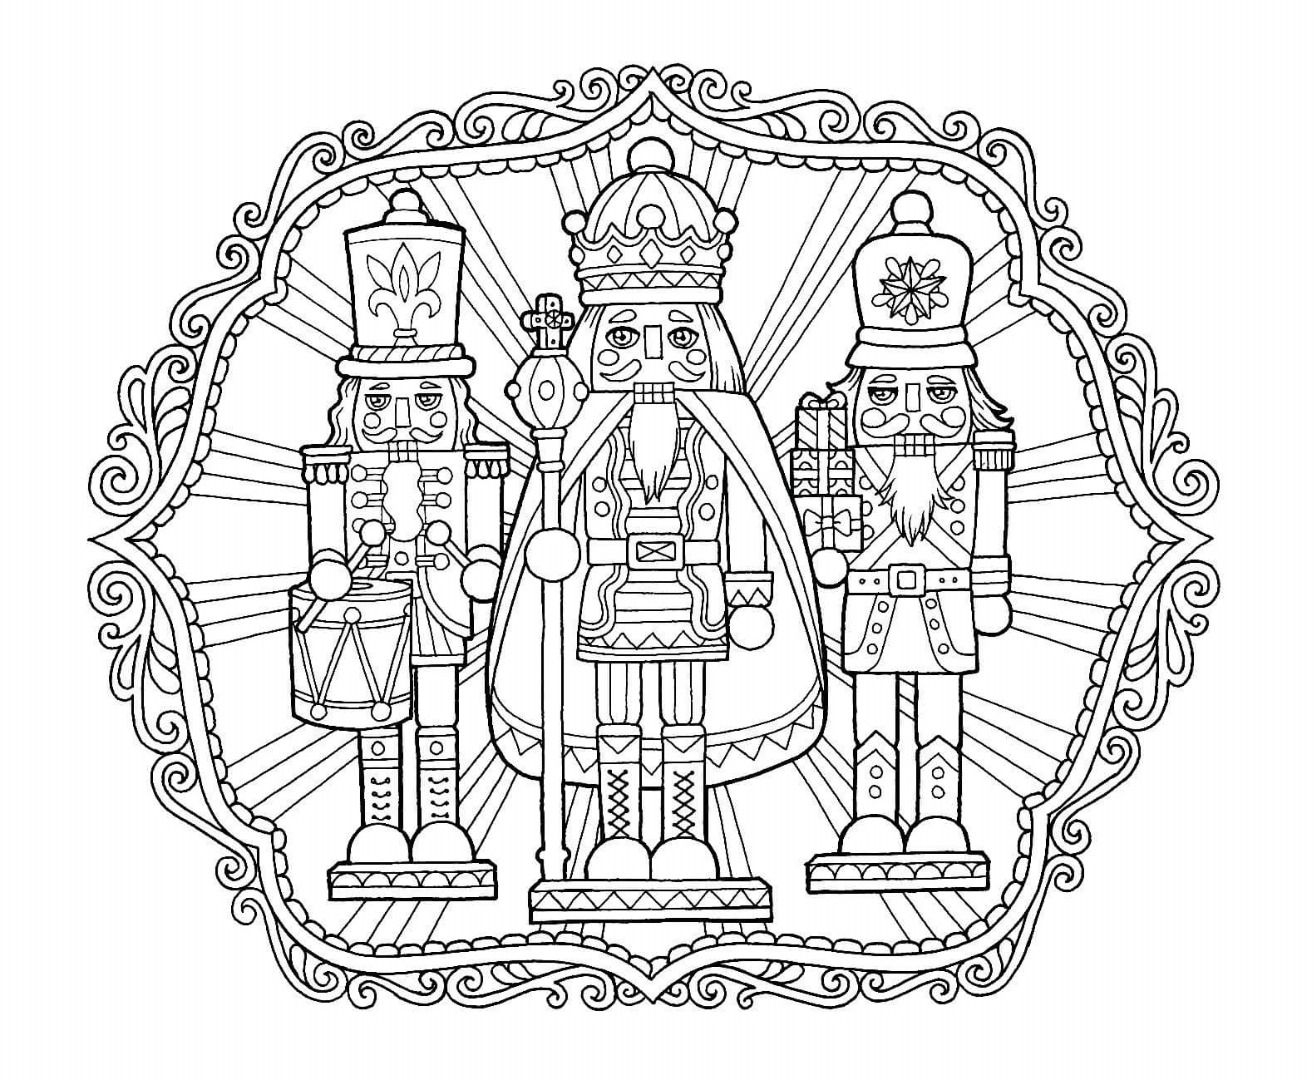 christmas nutcracker coloring page coloring sheets adult coloring pages coloring books cool coloring